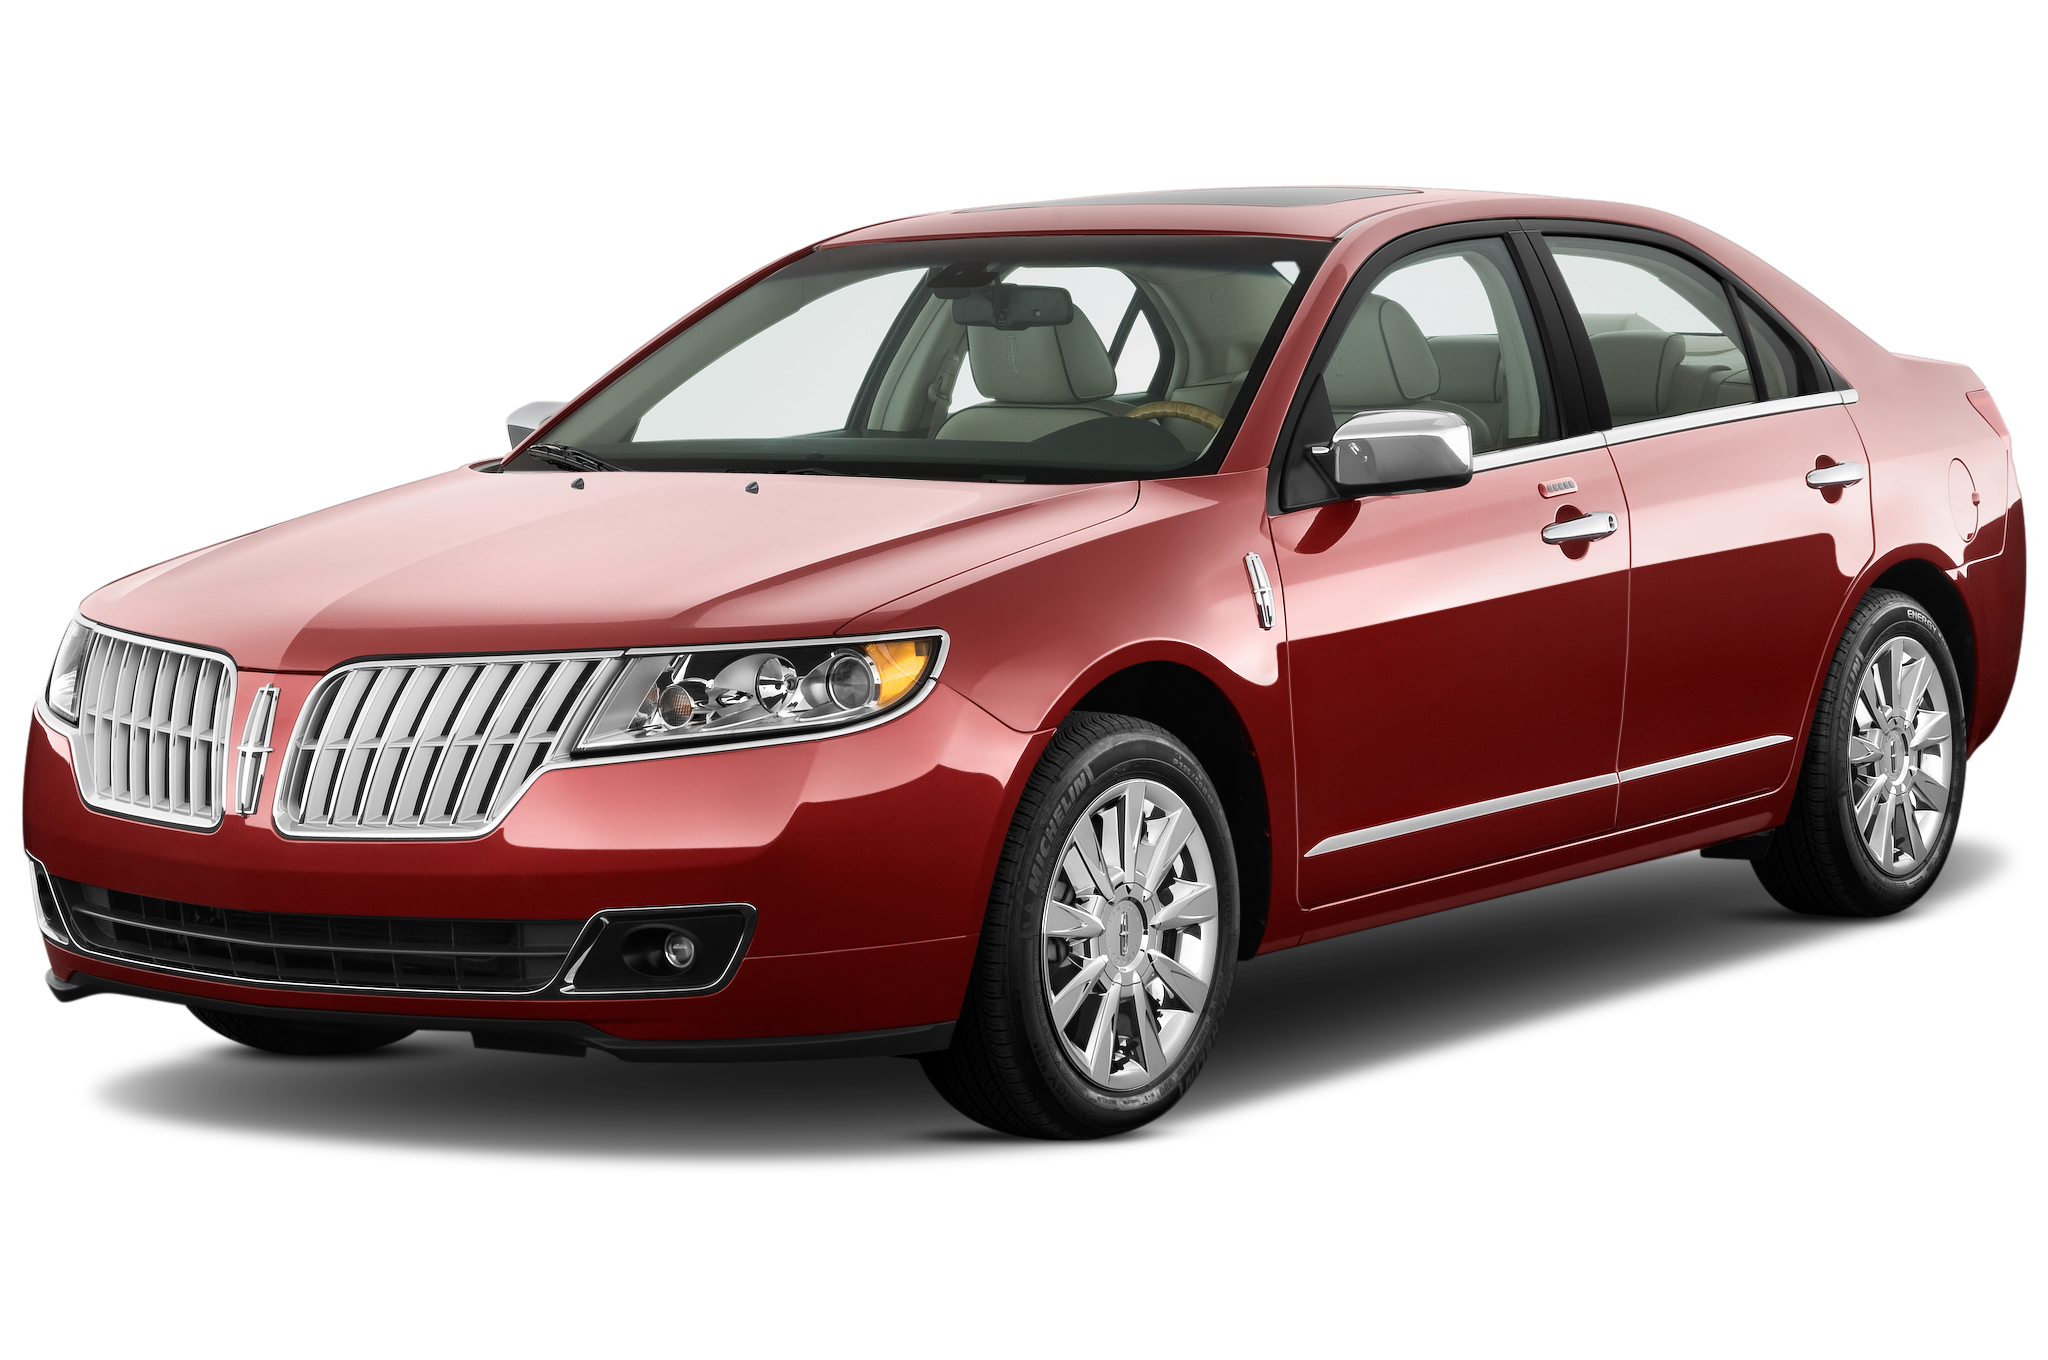 Civic Type R Awd >> 2011 Lincoln MKZ Hybrid EPA Rated at 41 MPG in City Driving